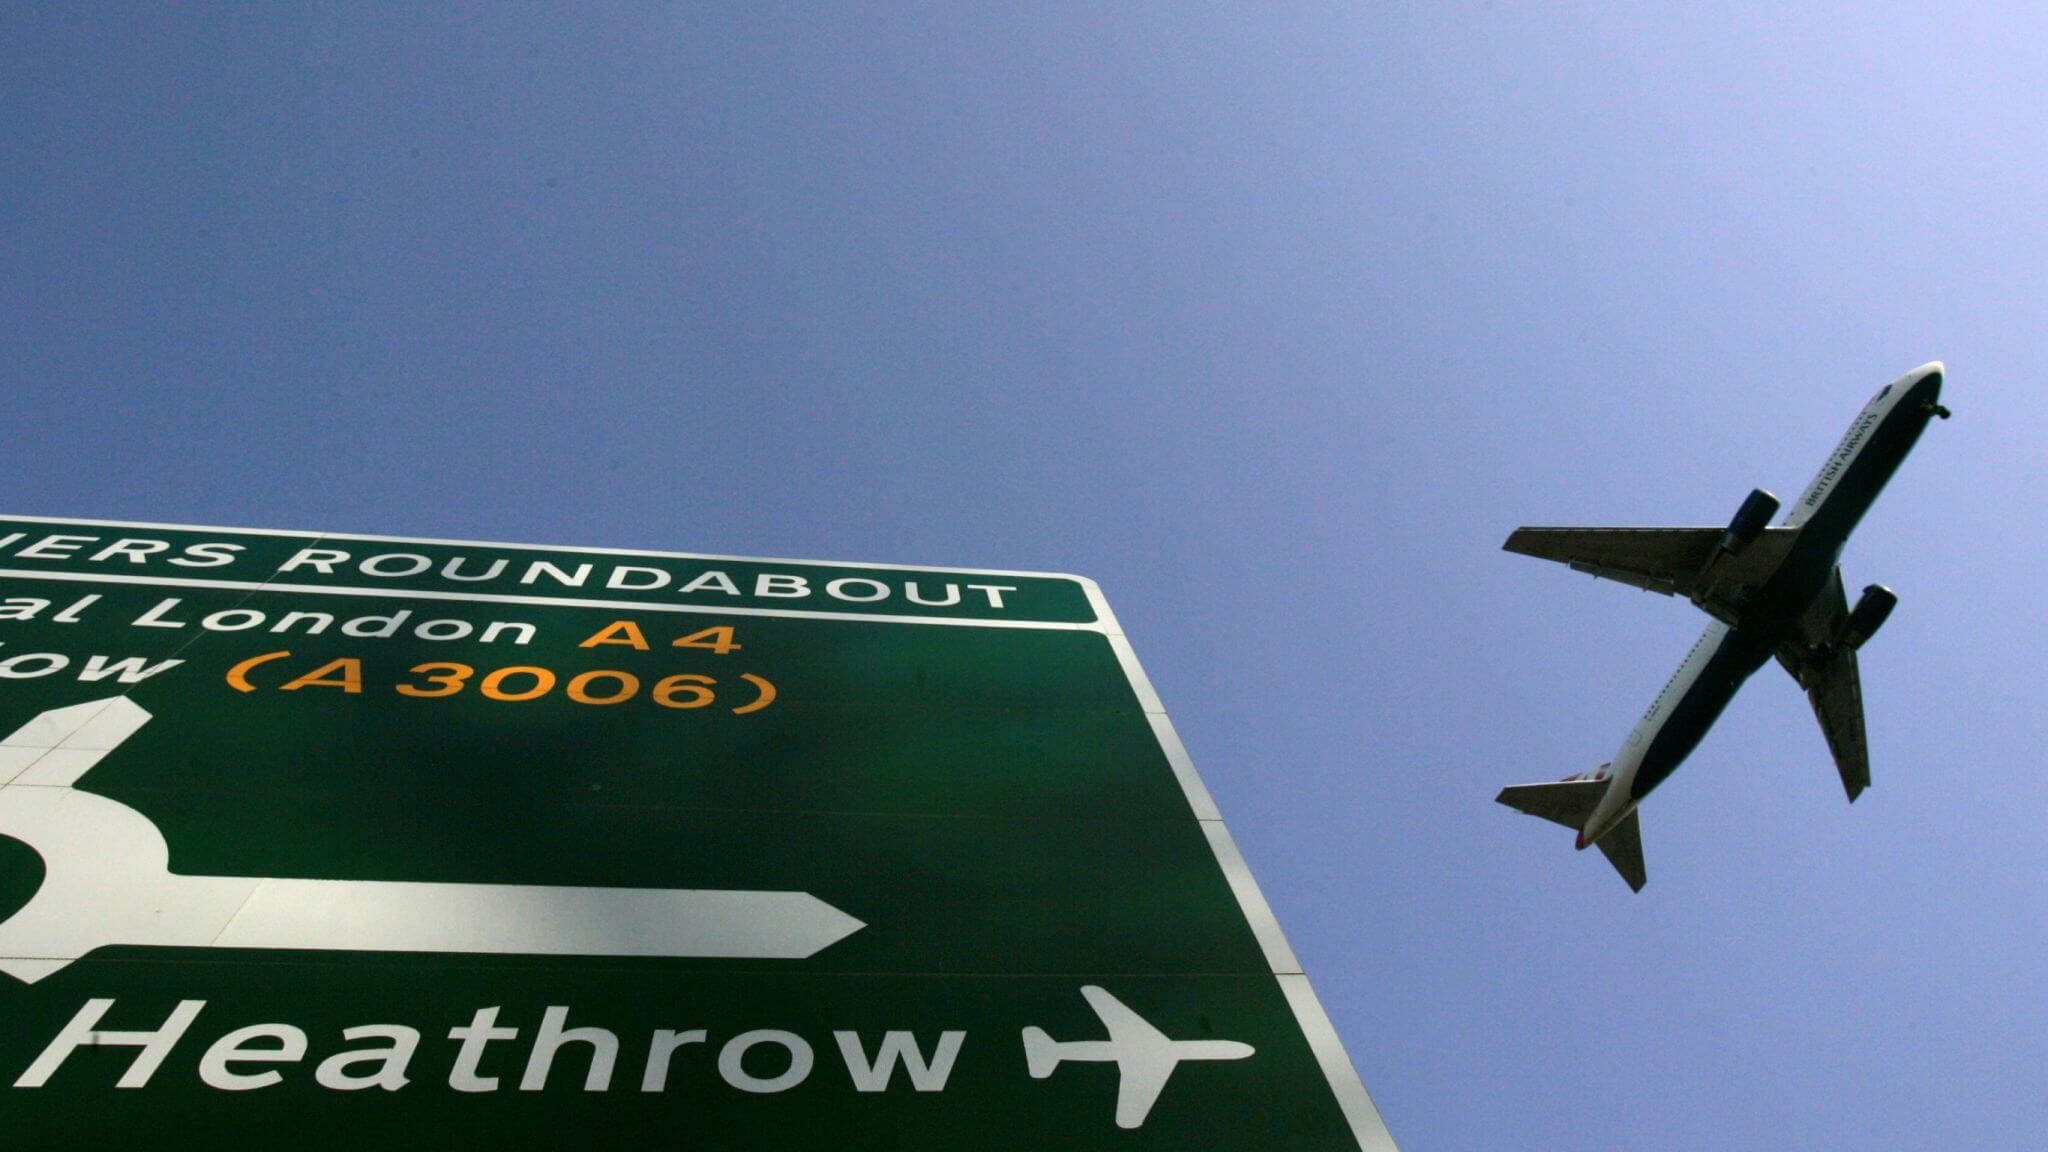 Heathrow targets zero carbon airport by mid-2030s